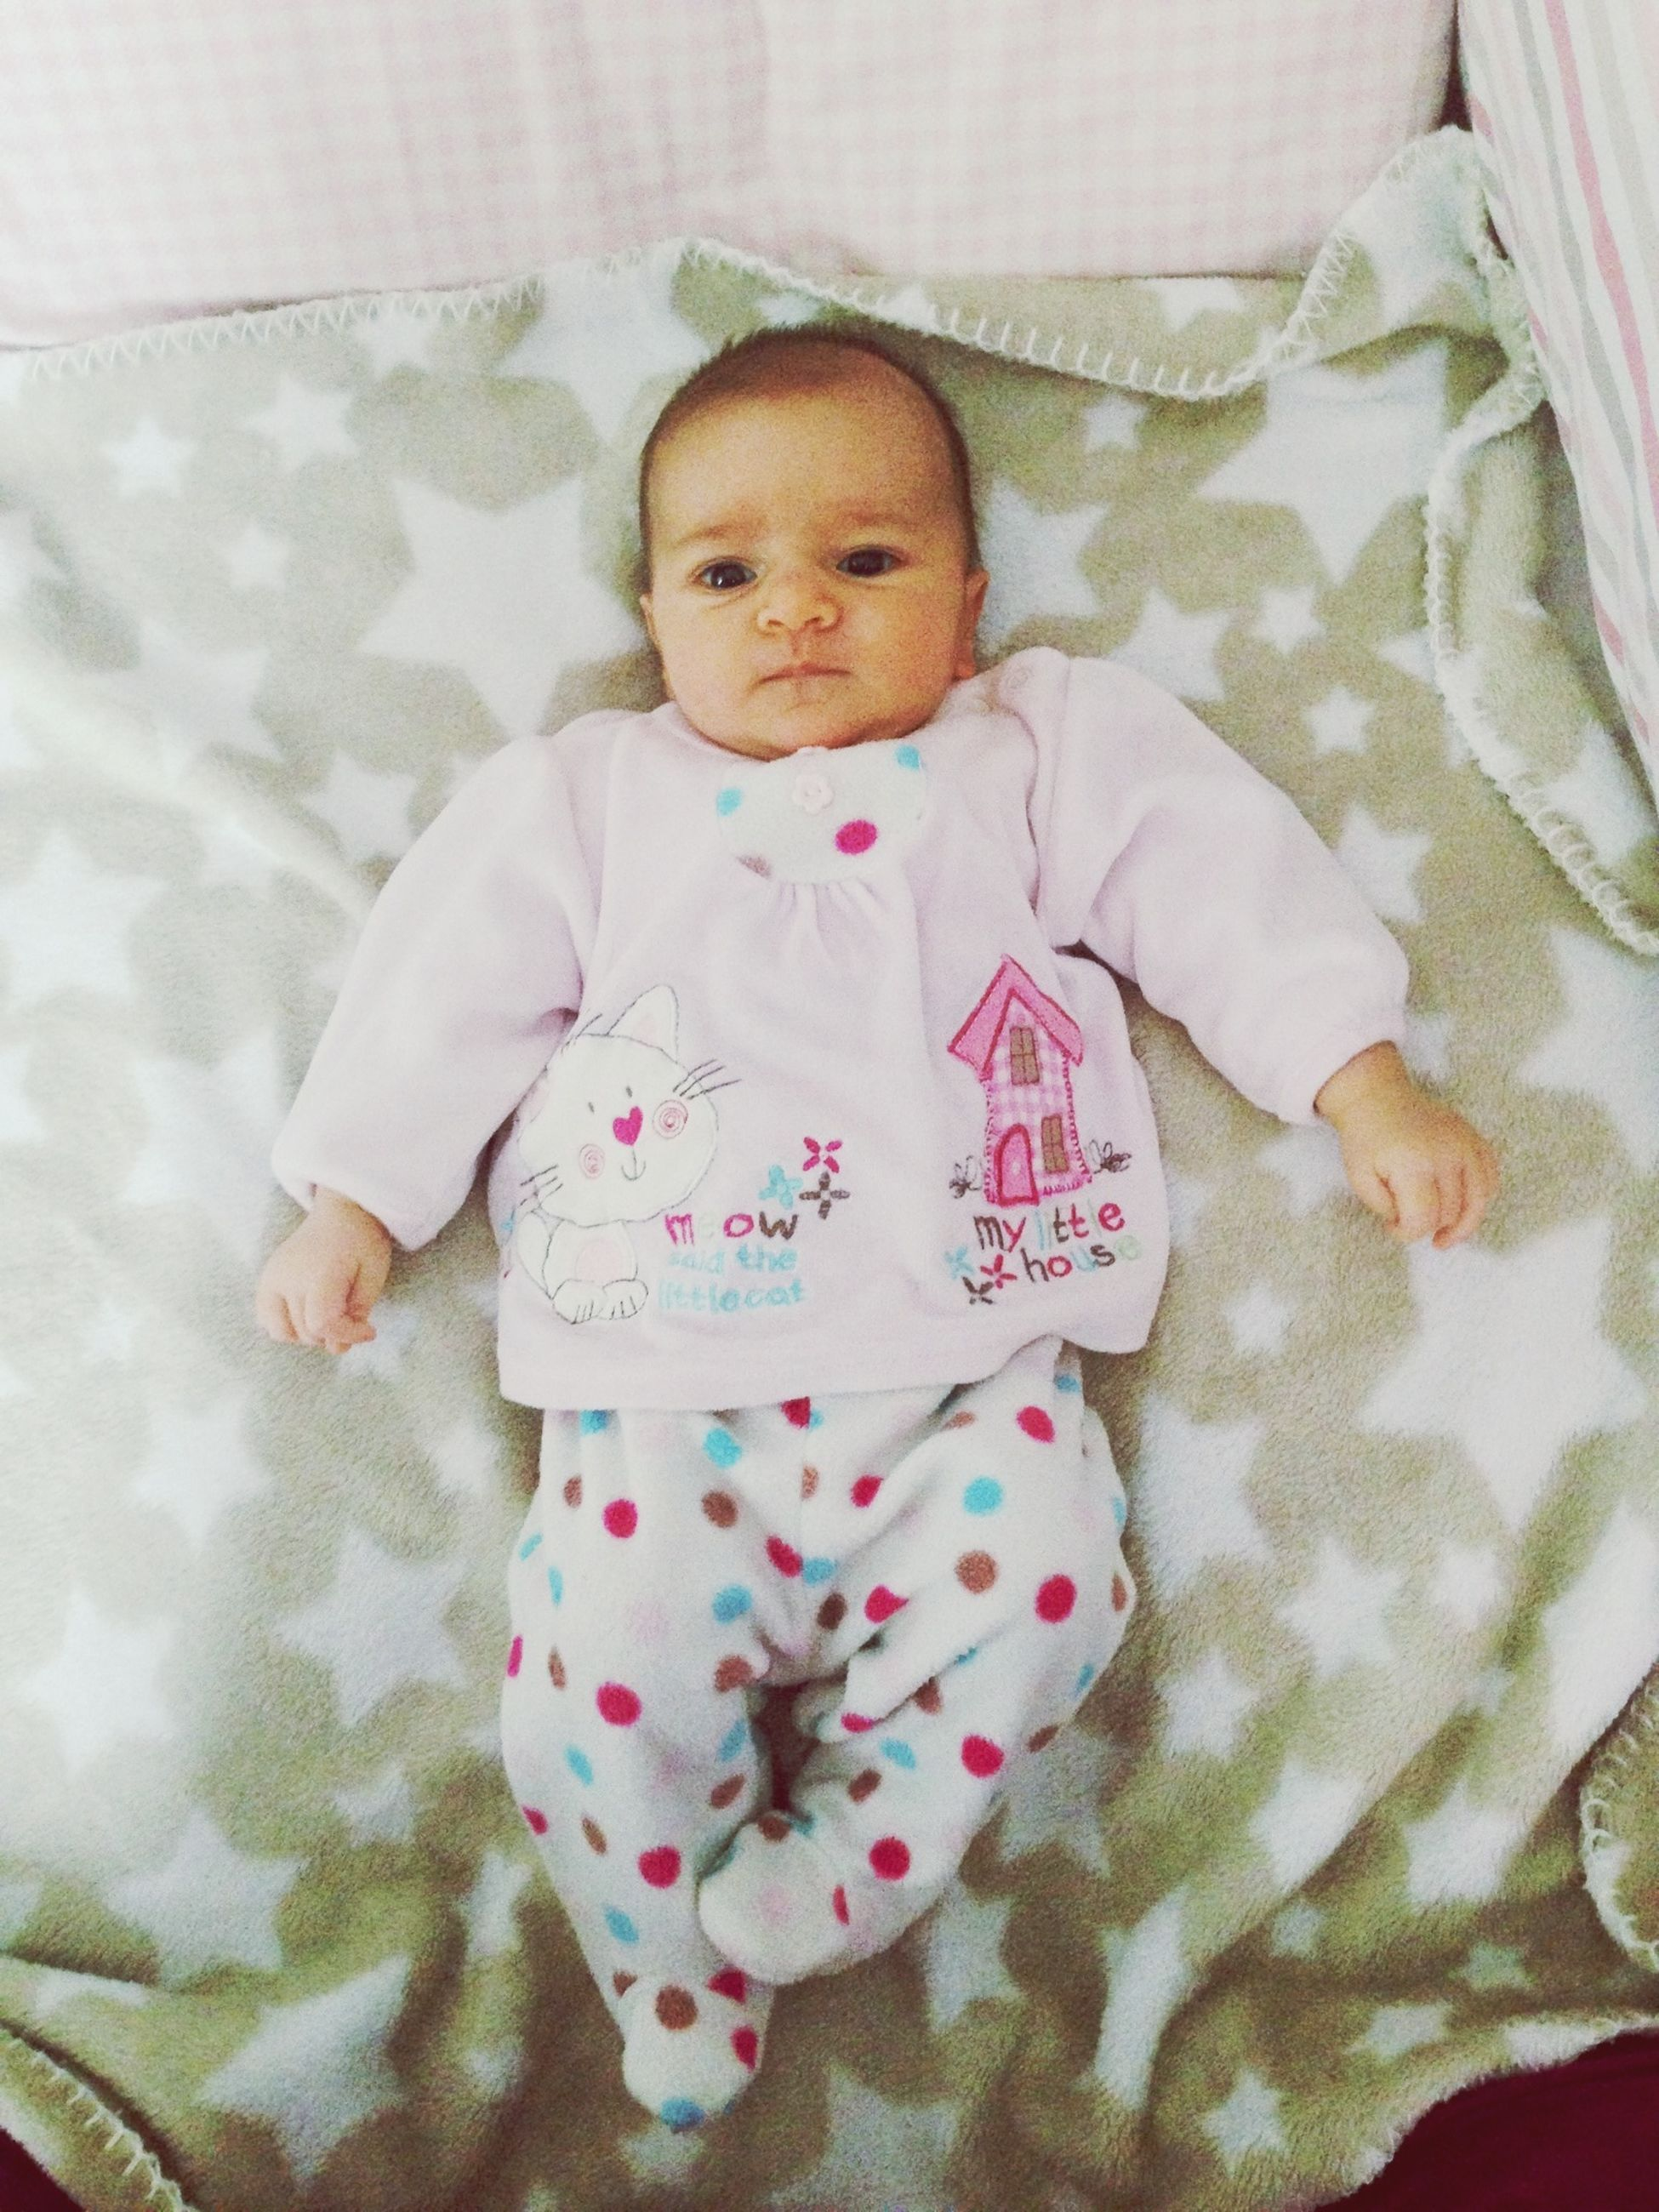 baby, real people, high angle view, babyhood, baby clothing, indoors, one person, relaxation, bed, front view, crib, babies only, day, newborn, mammal, people